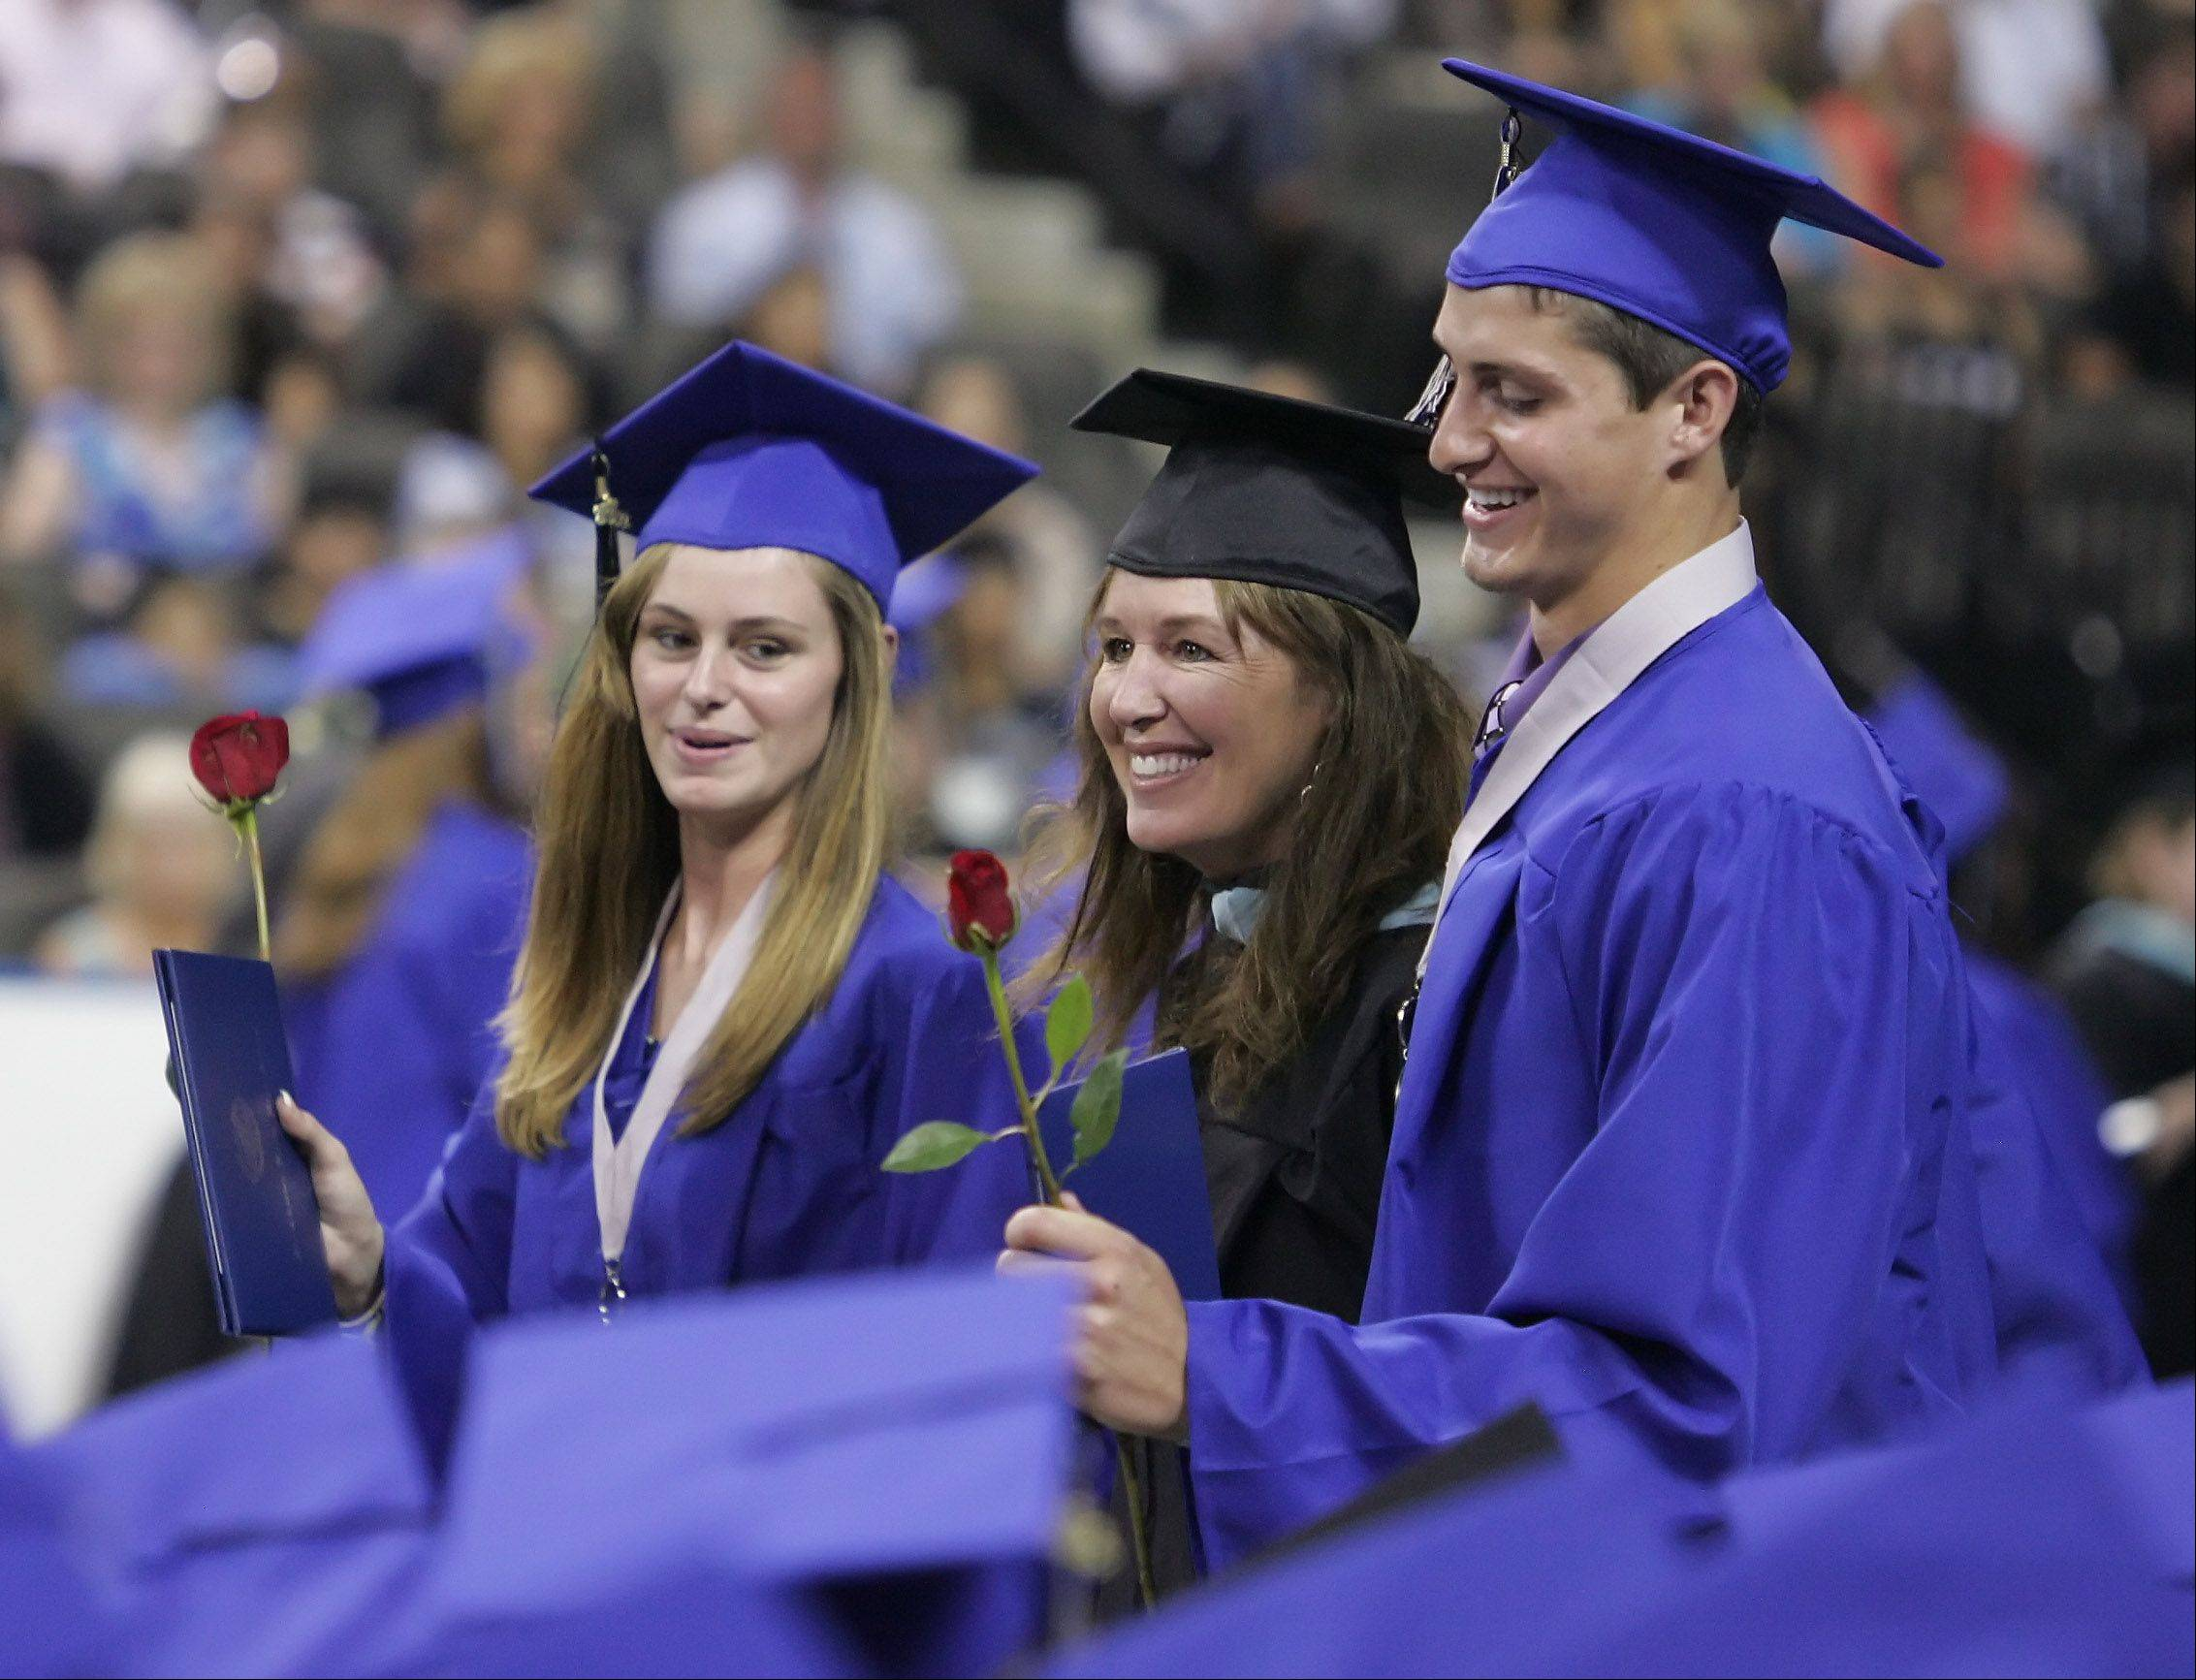 St. Charles North teacher Lori Creasor walks with her children, Sarah and Garrett, after they received their diplomas during the 2012 graduation ceremony for St. Charles North High School Sunday at the Sears Centre in Hoffman Estates. There were 508 seniors that graduated this year.